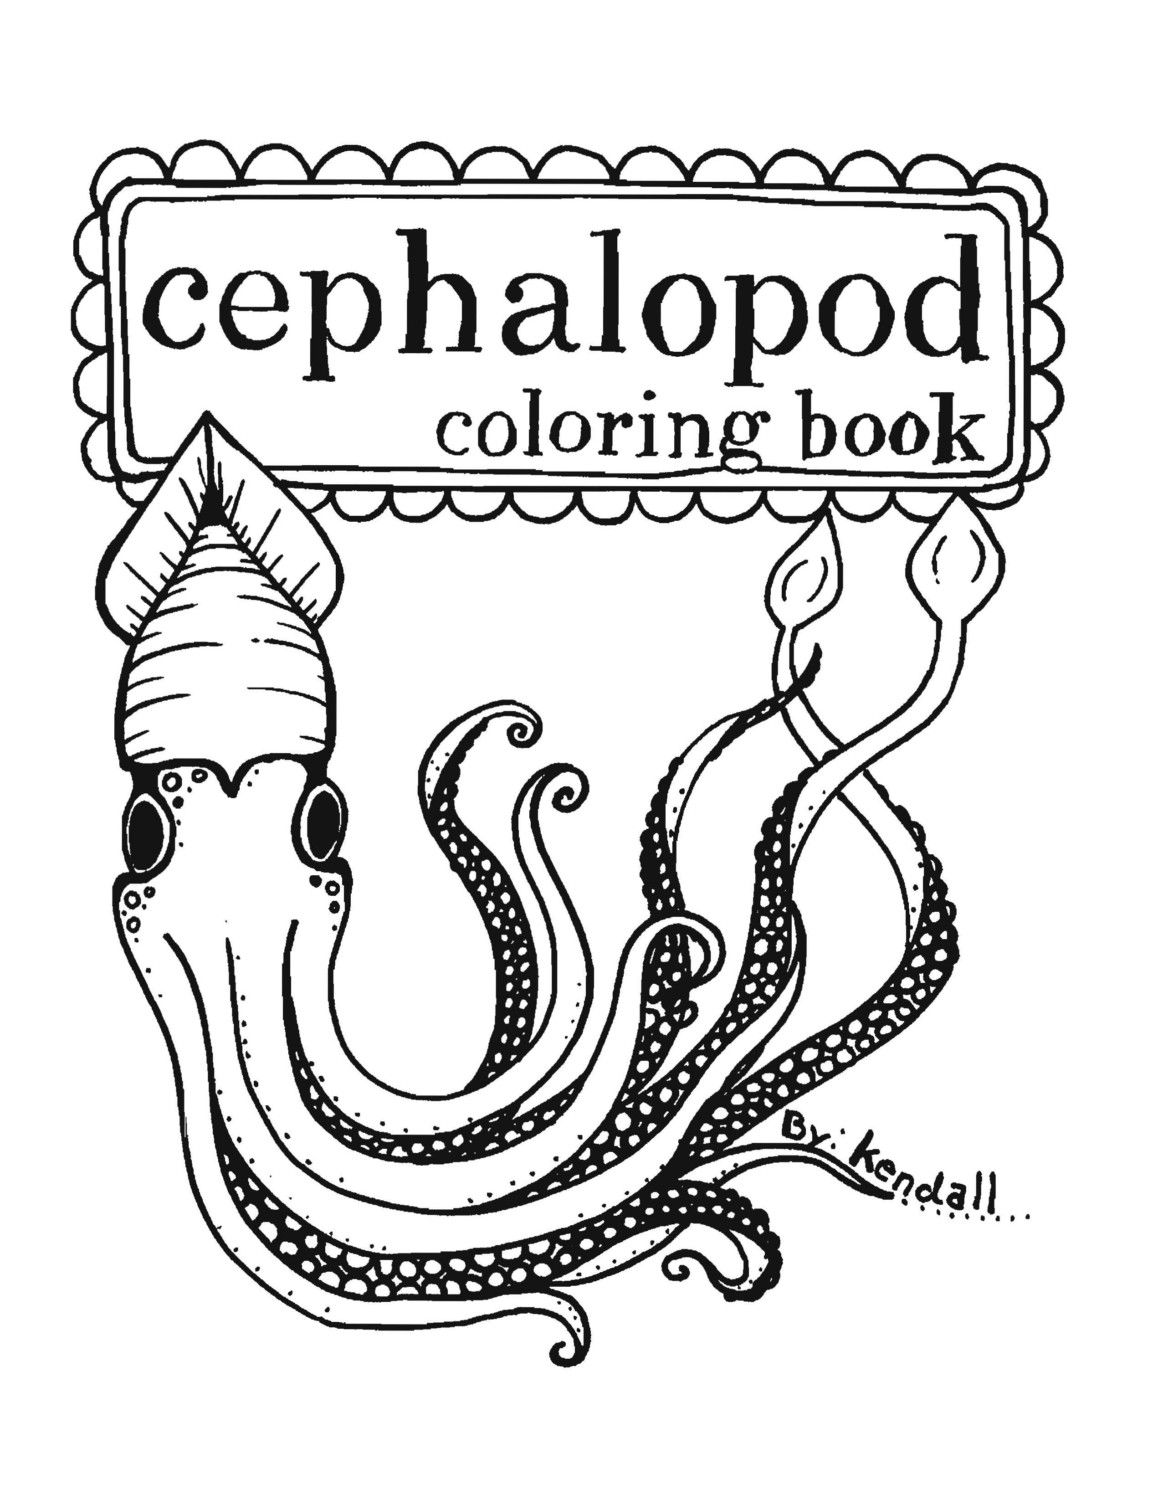 Pin By Sam Taylor On Cephalopod Coloring Books Cephalopod